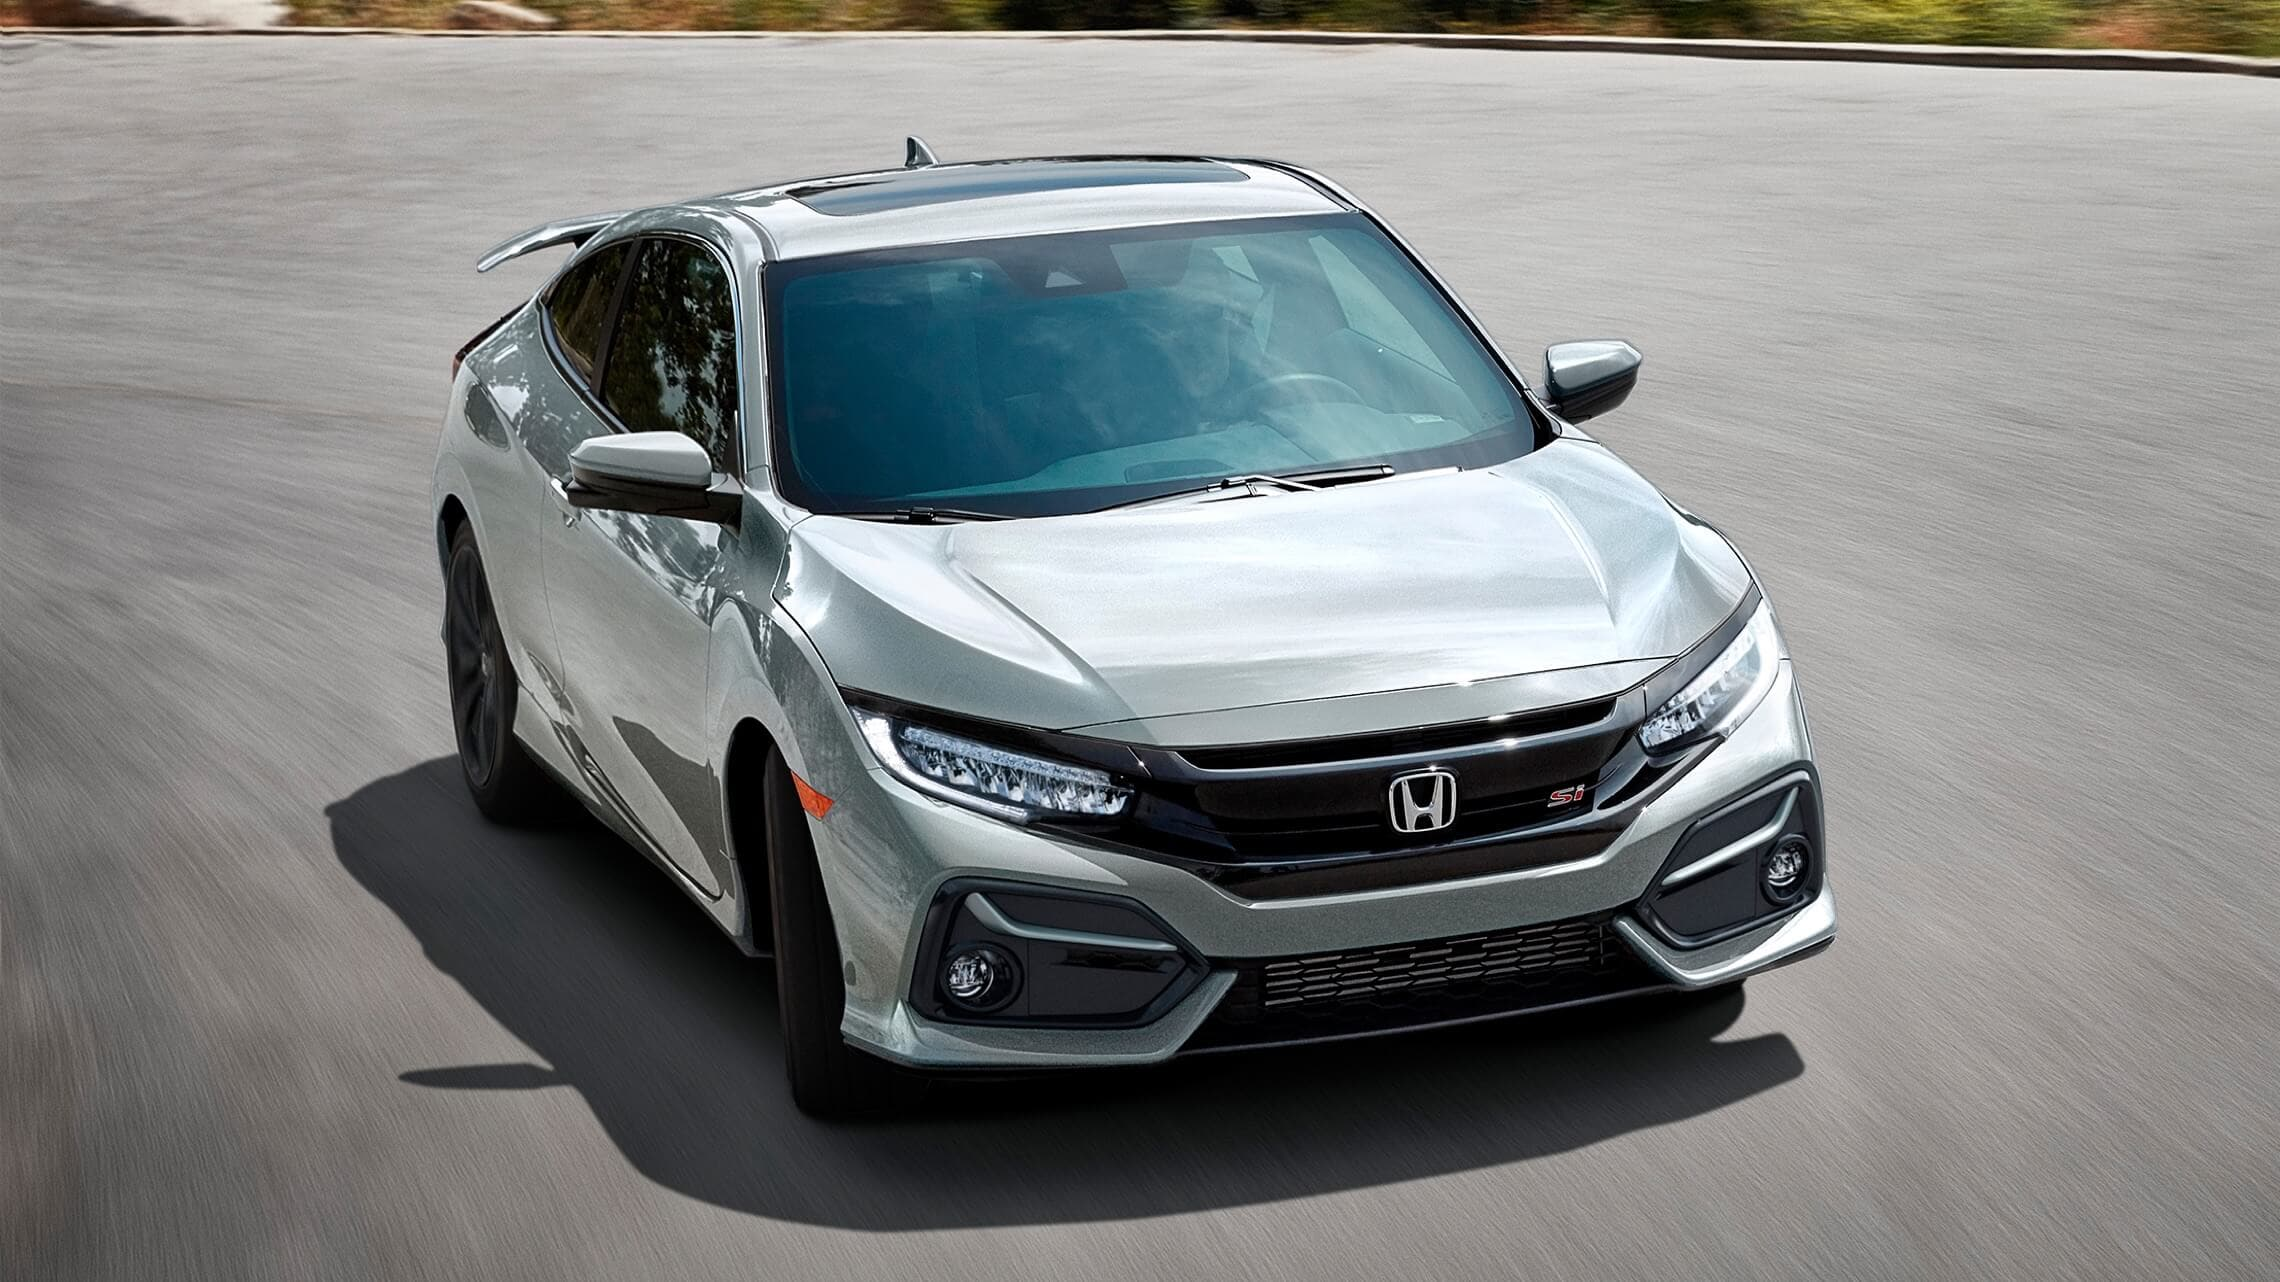 Front 7/8 passenger's side view of 2020 Honda Civic Si Coupe in Lunar Silver Metallic.